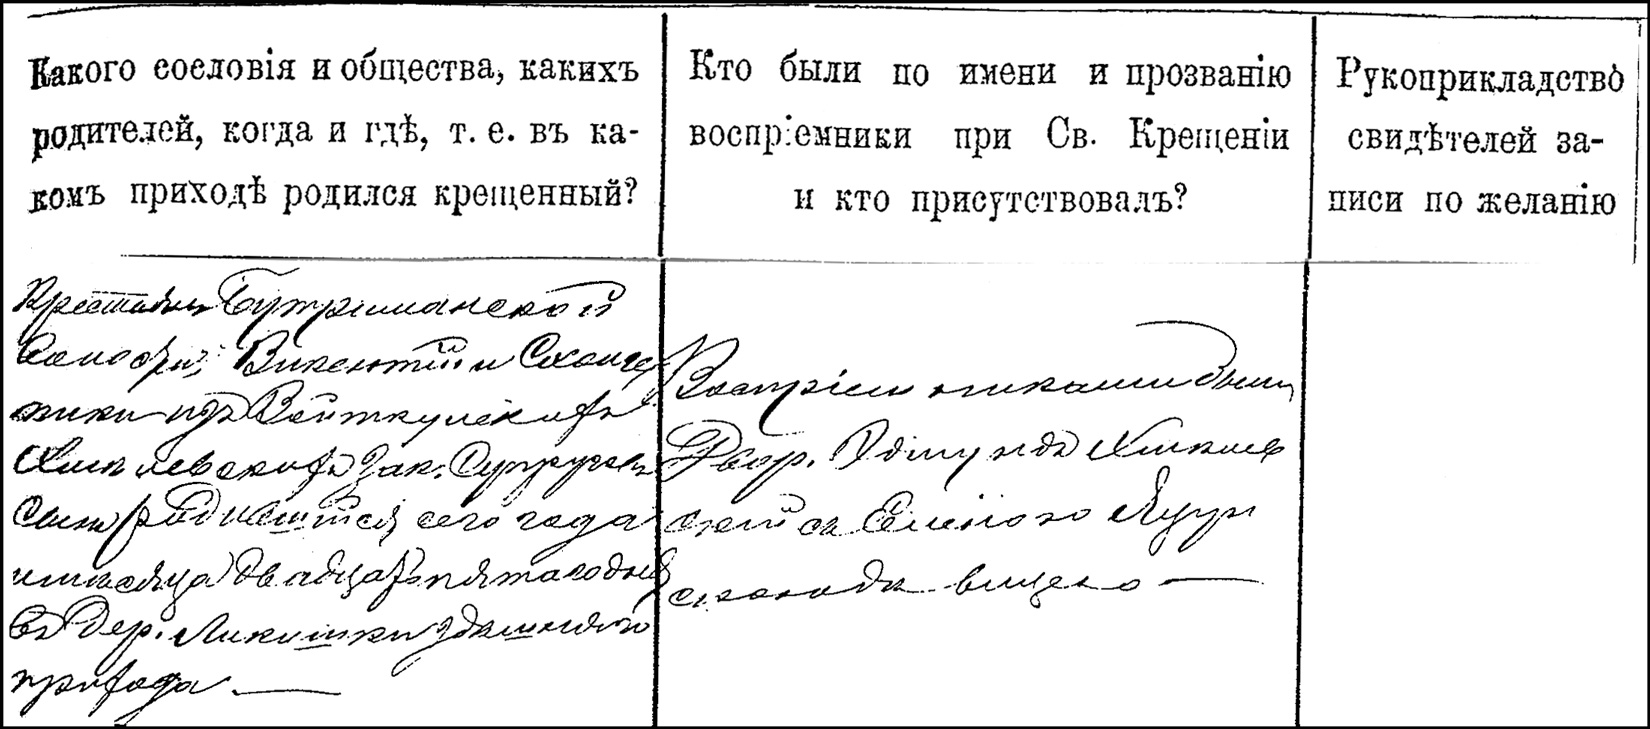 The Birth and Baptismal Record of Wladyslaw Chmielewski - 1883 - Right